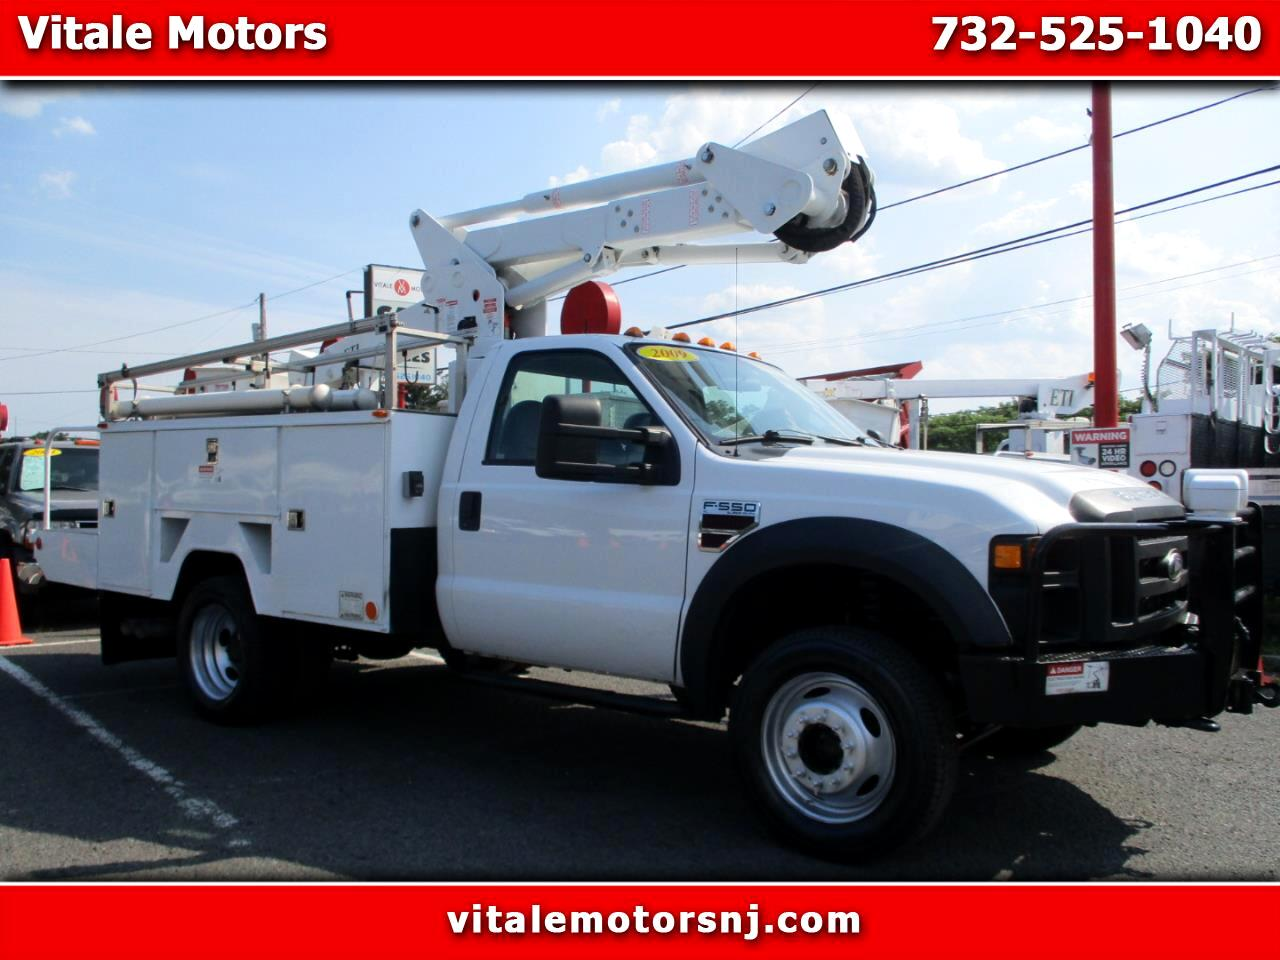 2009 Ford F-550 42' INSULATED BUCKET TRUCK 4X4 DIESEL 550